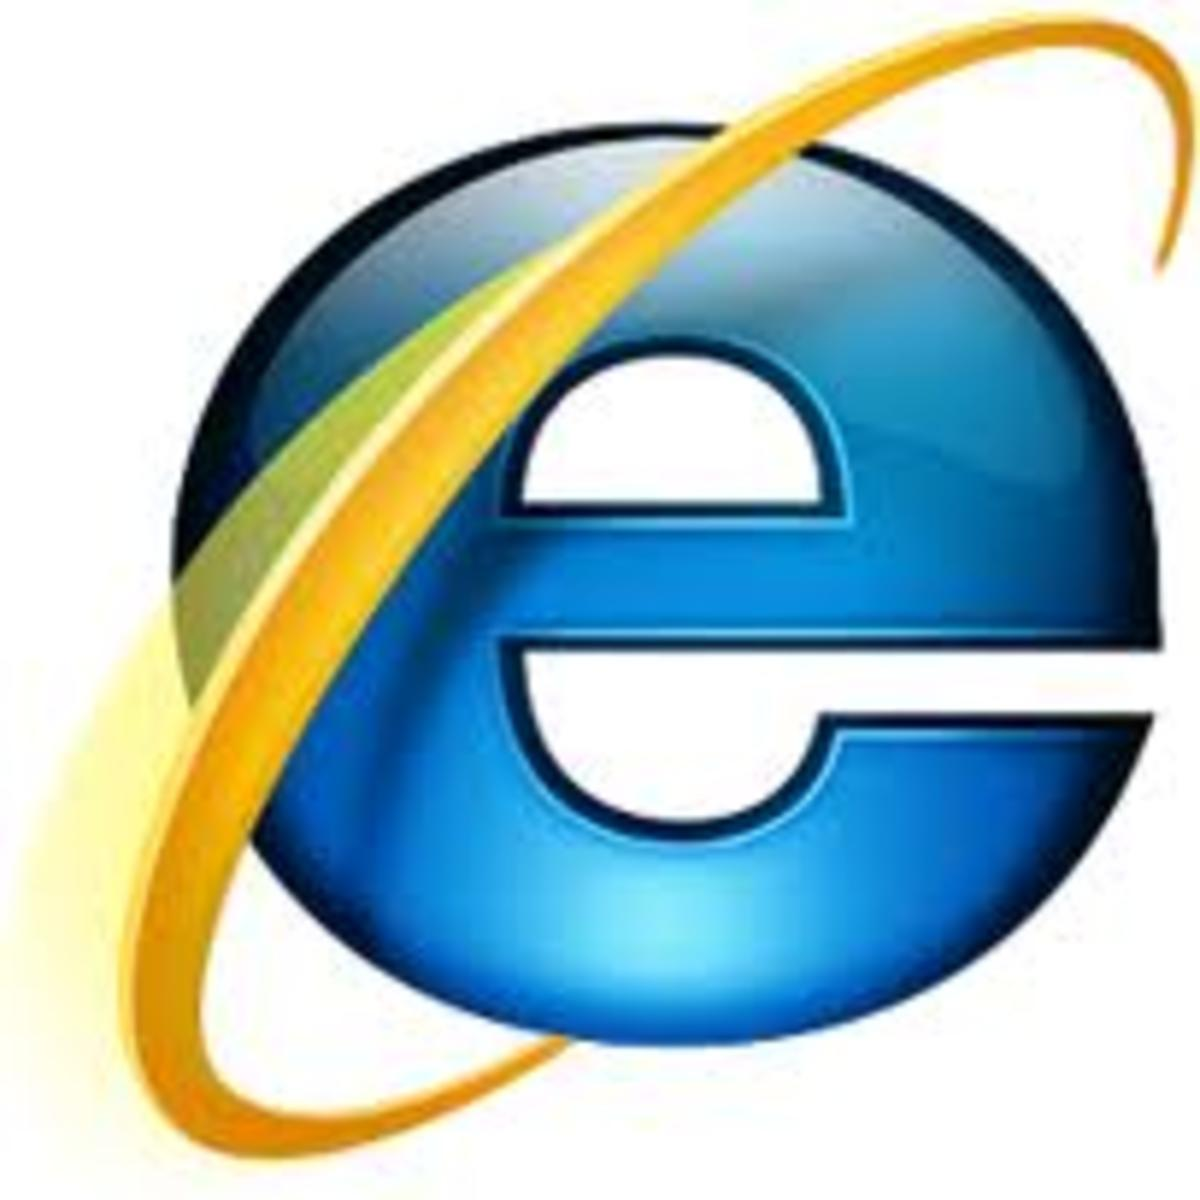 Microsoft Internet Explorer (IE) logo